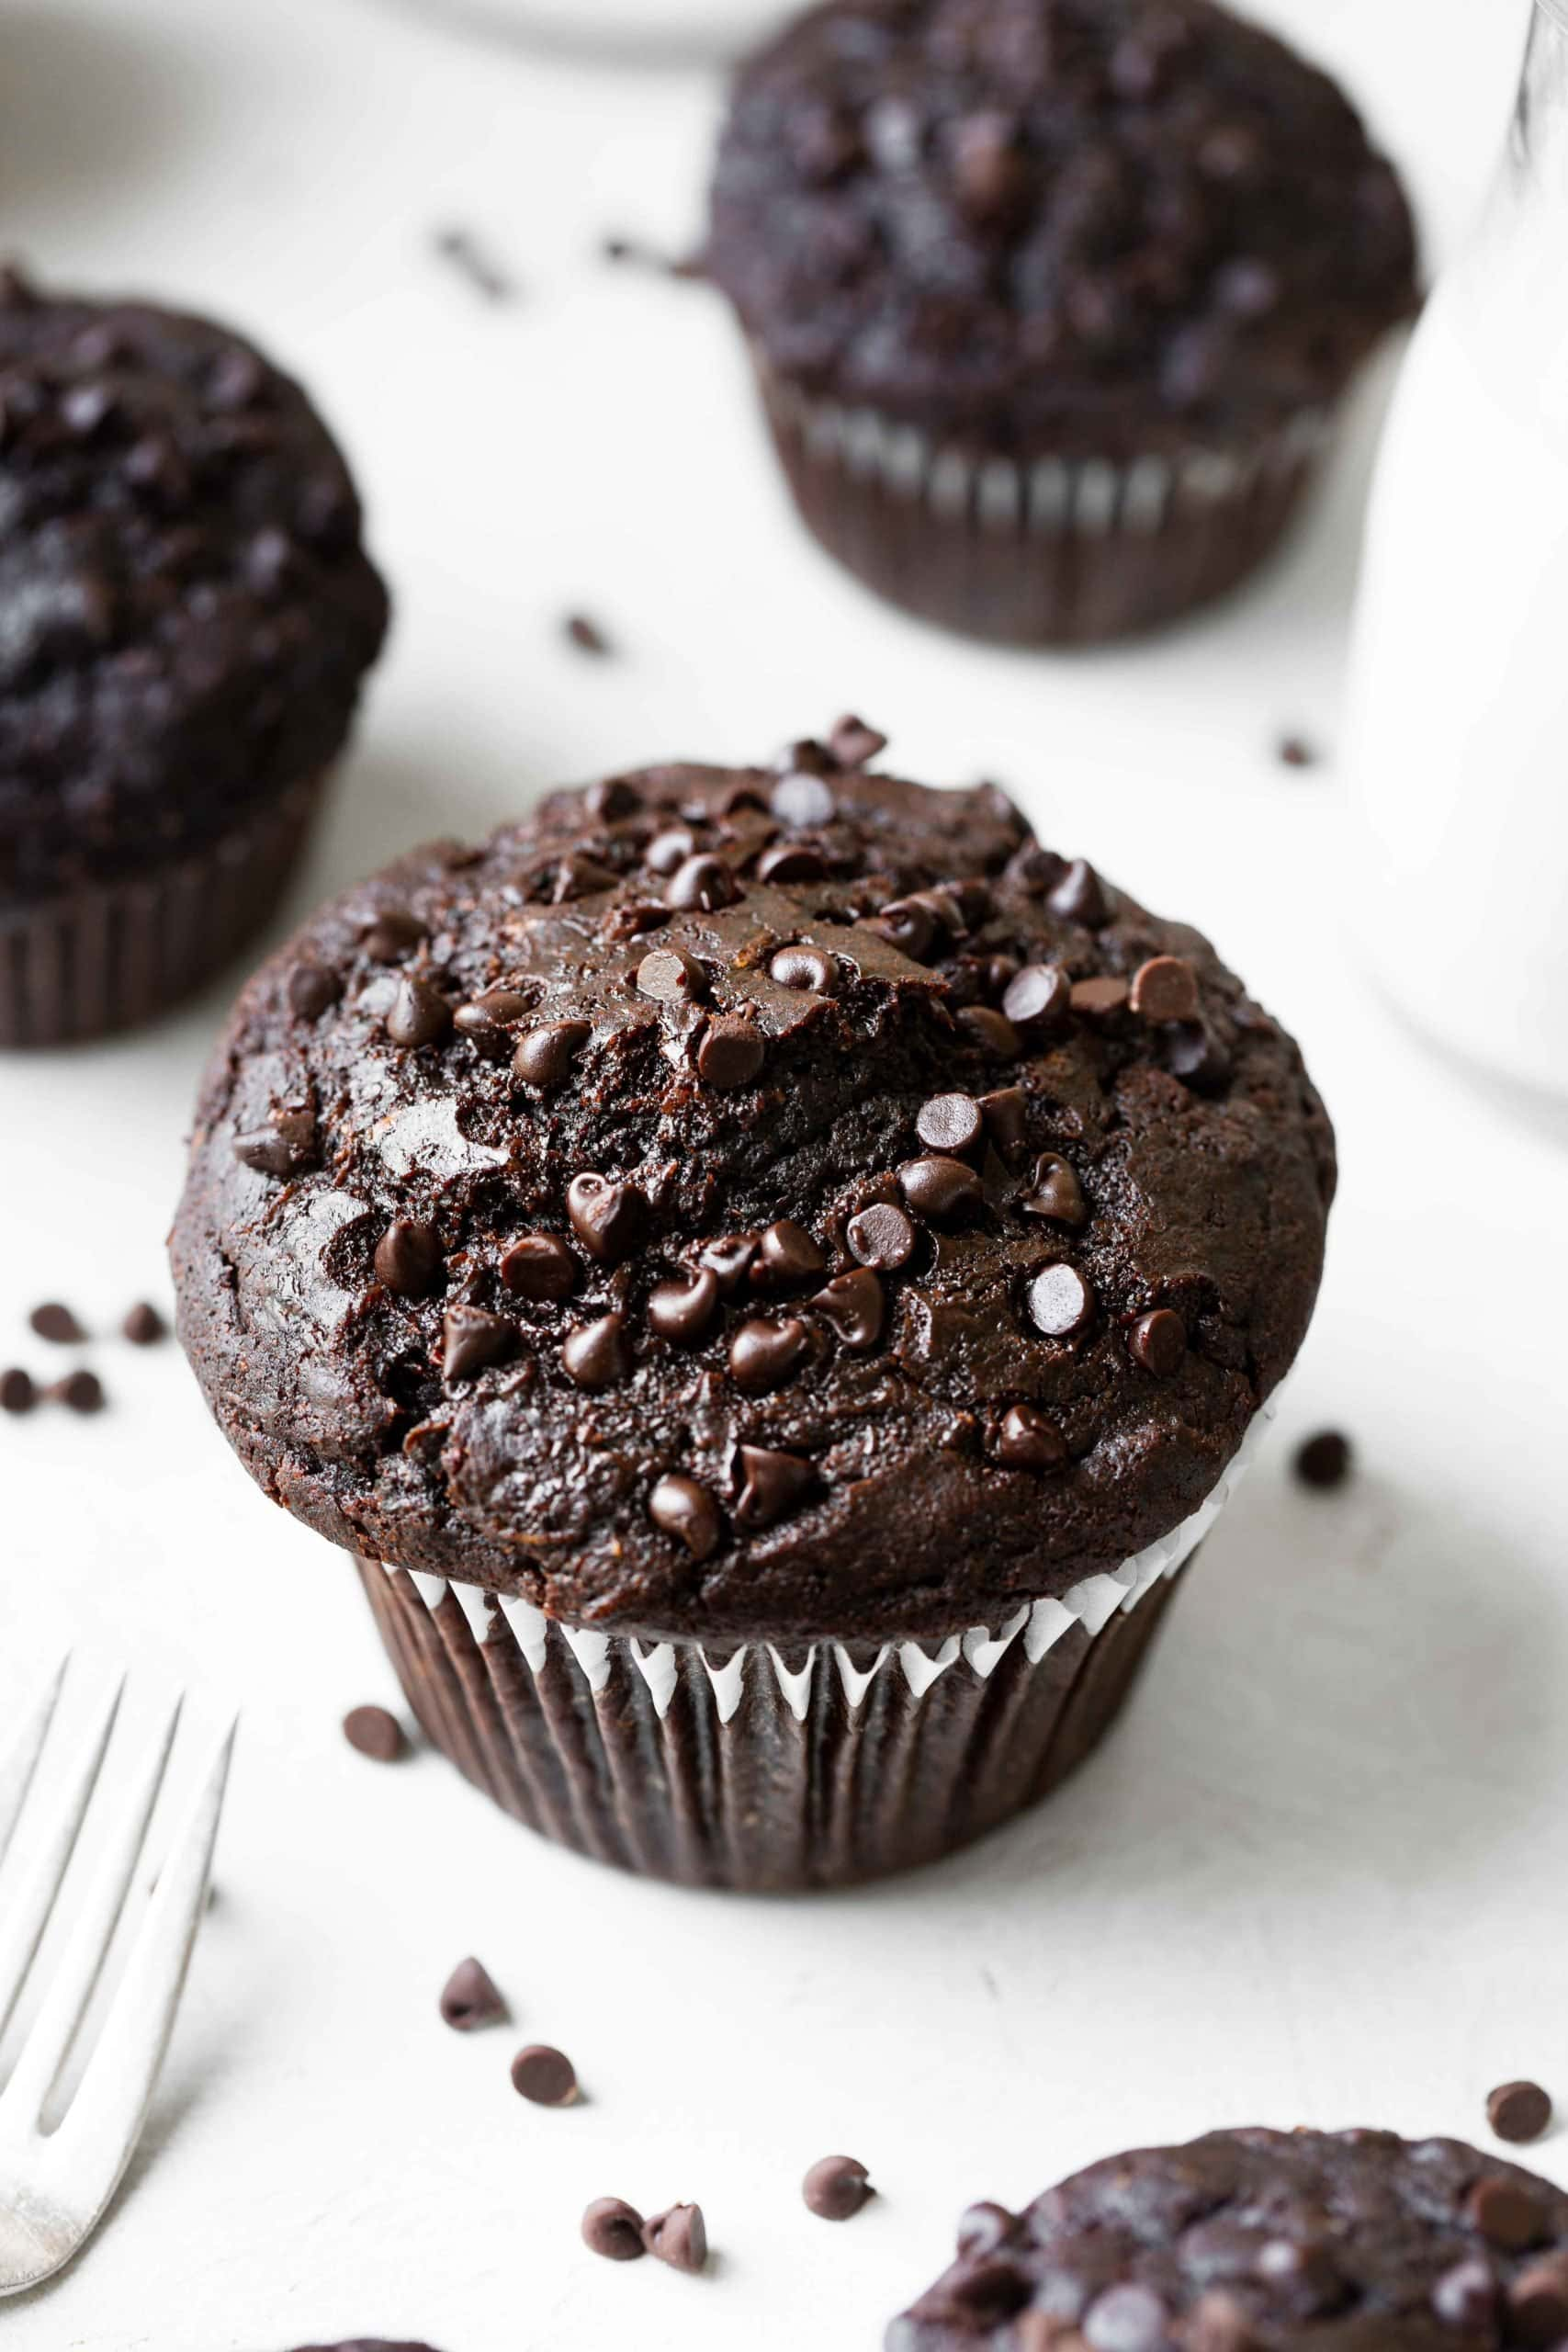 A white plate holding a jumbo chocolate zucchini muffin with mini chocolate chips on top and sprinkled around the moist chocolate muffin